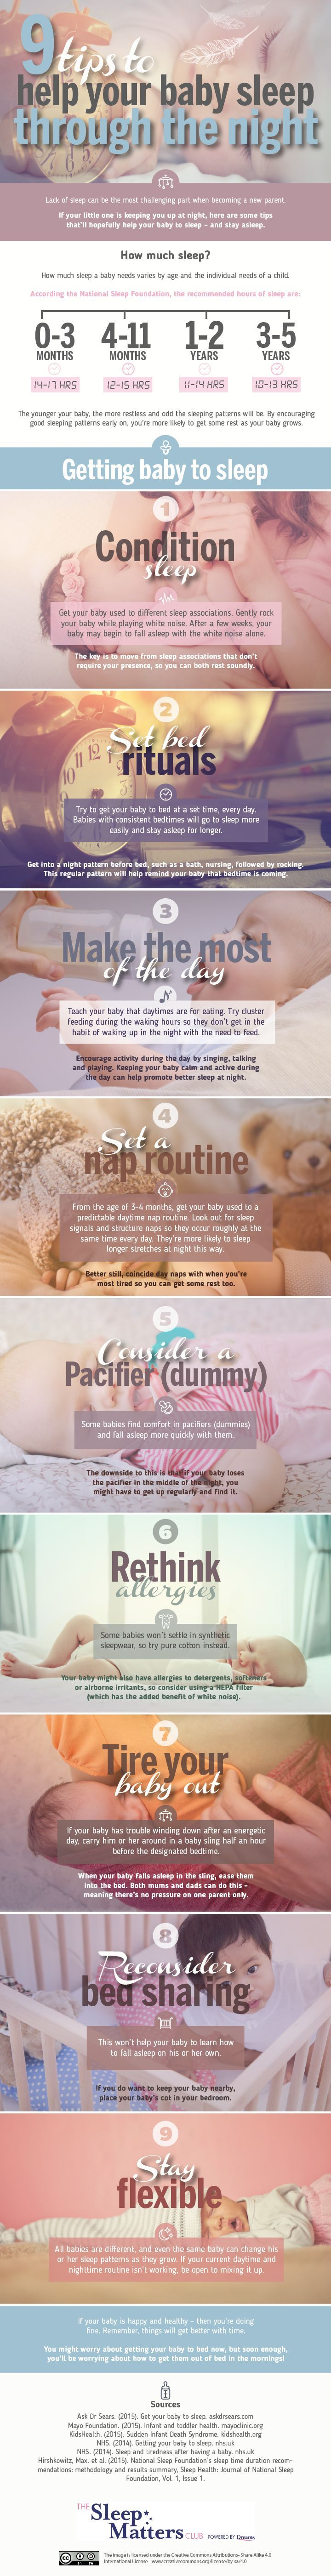 9 Tips To Help Your Baby Sleep Through The Night - Lack of sleep can often be the most challenging part of becoming a new parent, so Dreams has produced this list of tips and advice to help babies - and parents - get as much quality sleep as possible duri